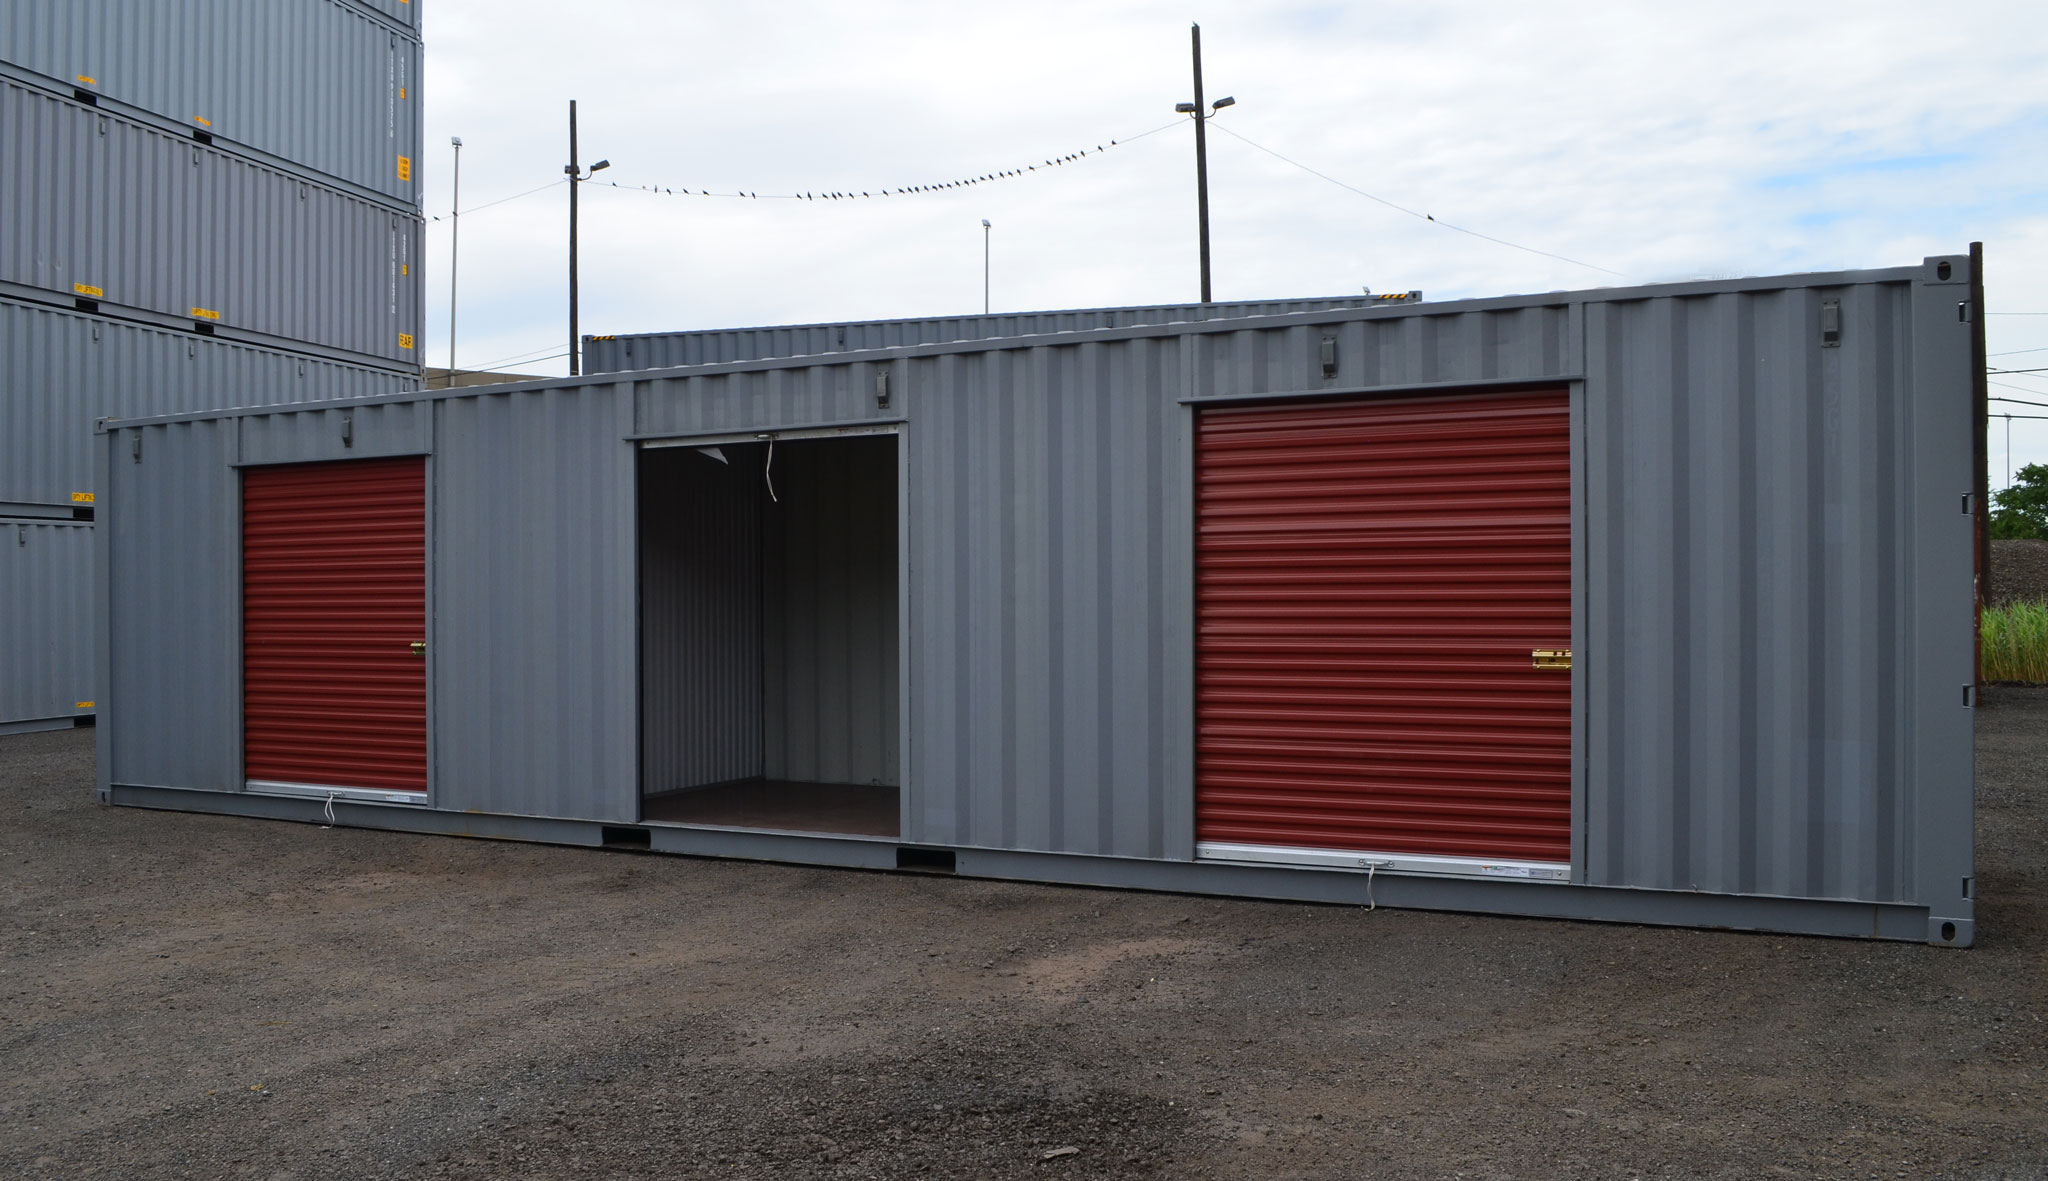 Storage Container with Three Roll Up Doors One Open